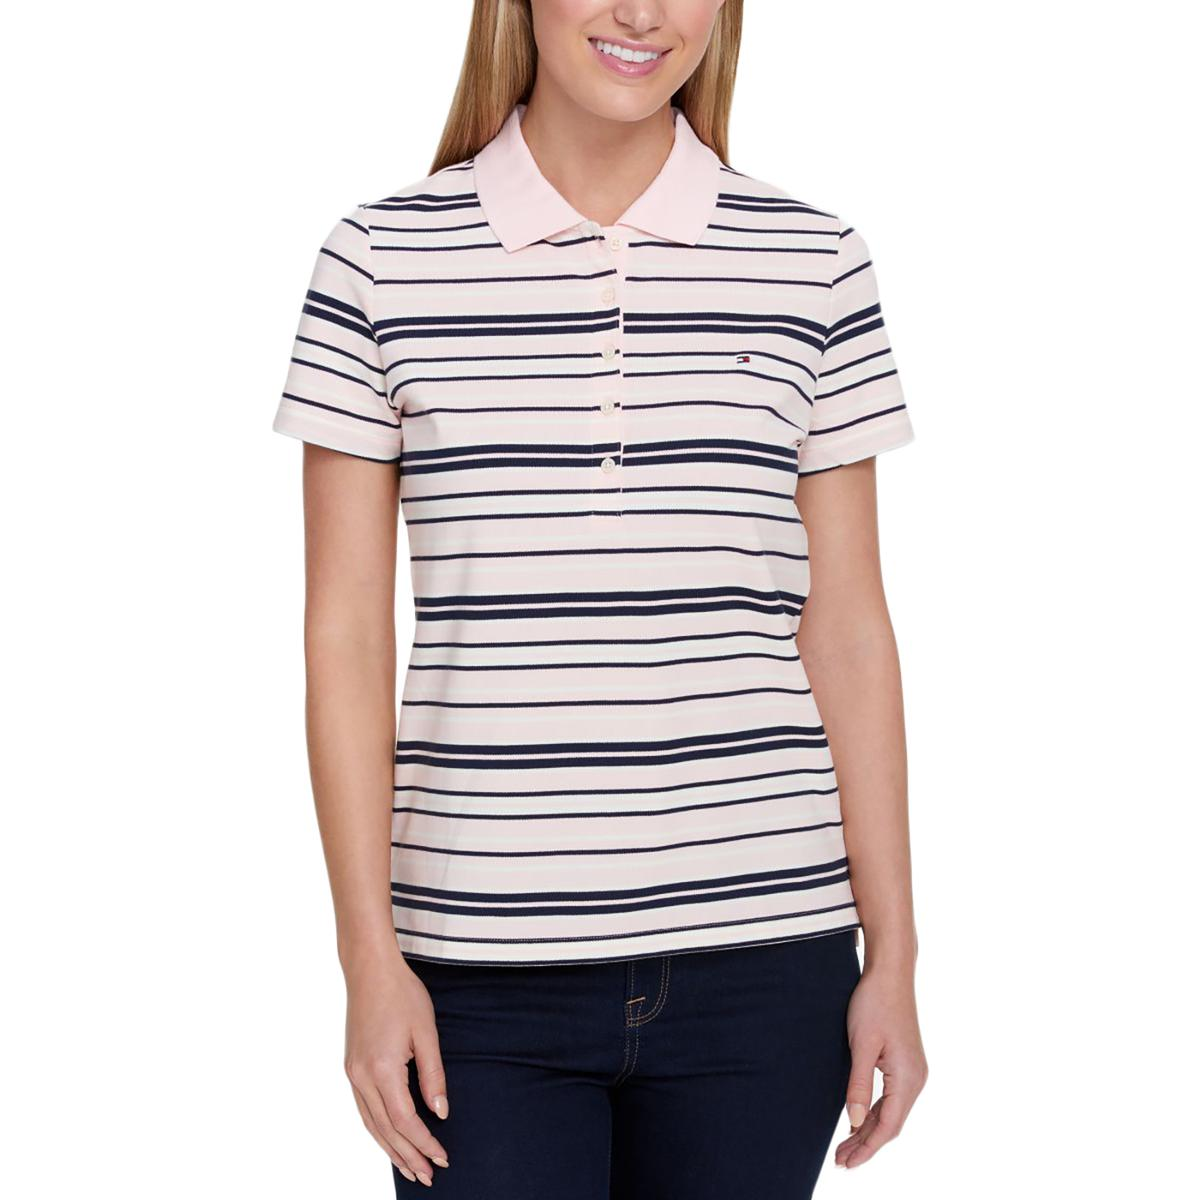 5b885c3c Image is loading Tommy-Hilfiger-Womens-Multi-Casual-Short-Sleeve-Striped-